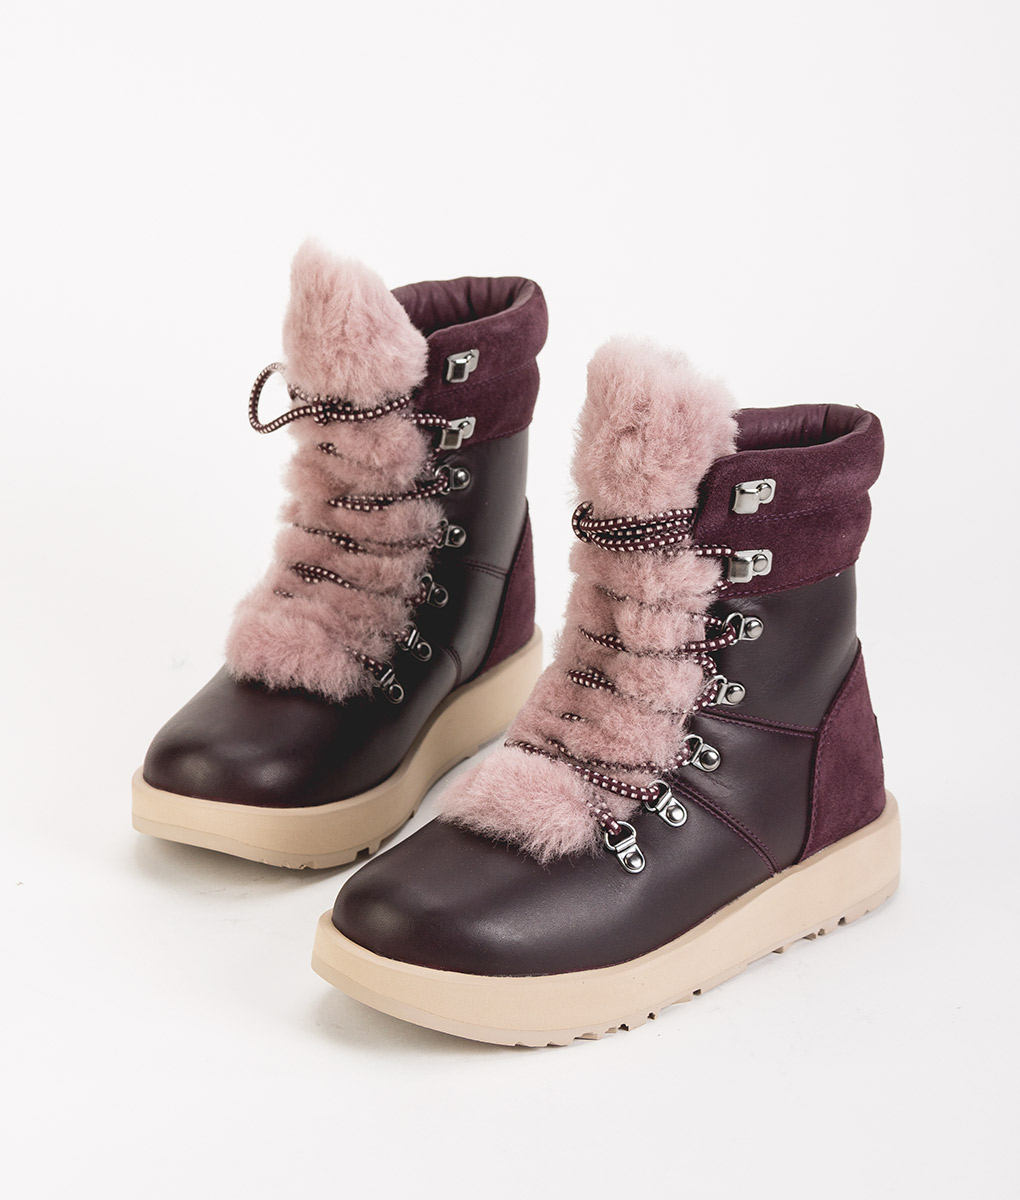 a8b1dff8742 UGG Women Ankle Boots 1017493 VIKI WATERPROOF, Port